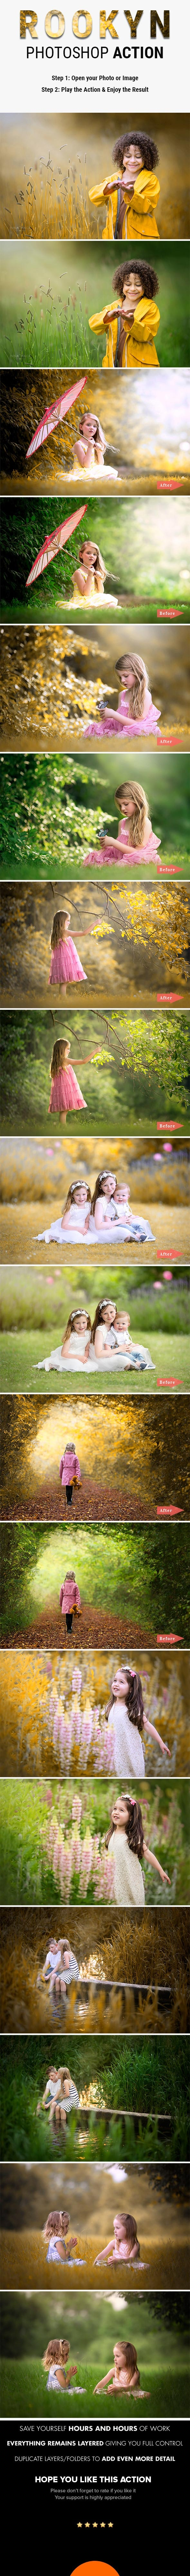 Rookyn Photoshop Action - Transform your Photo & give a Special Romantic Autumn Effects - Photo Effects Actions